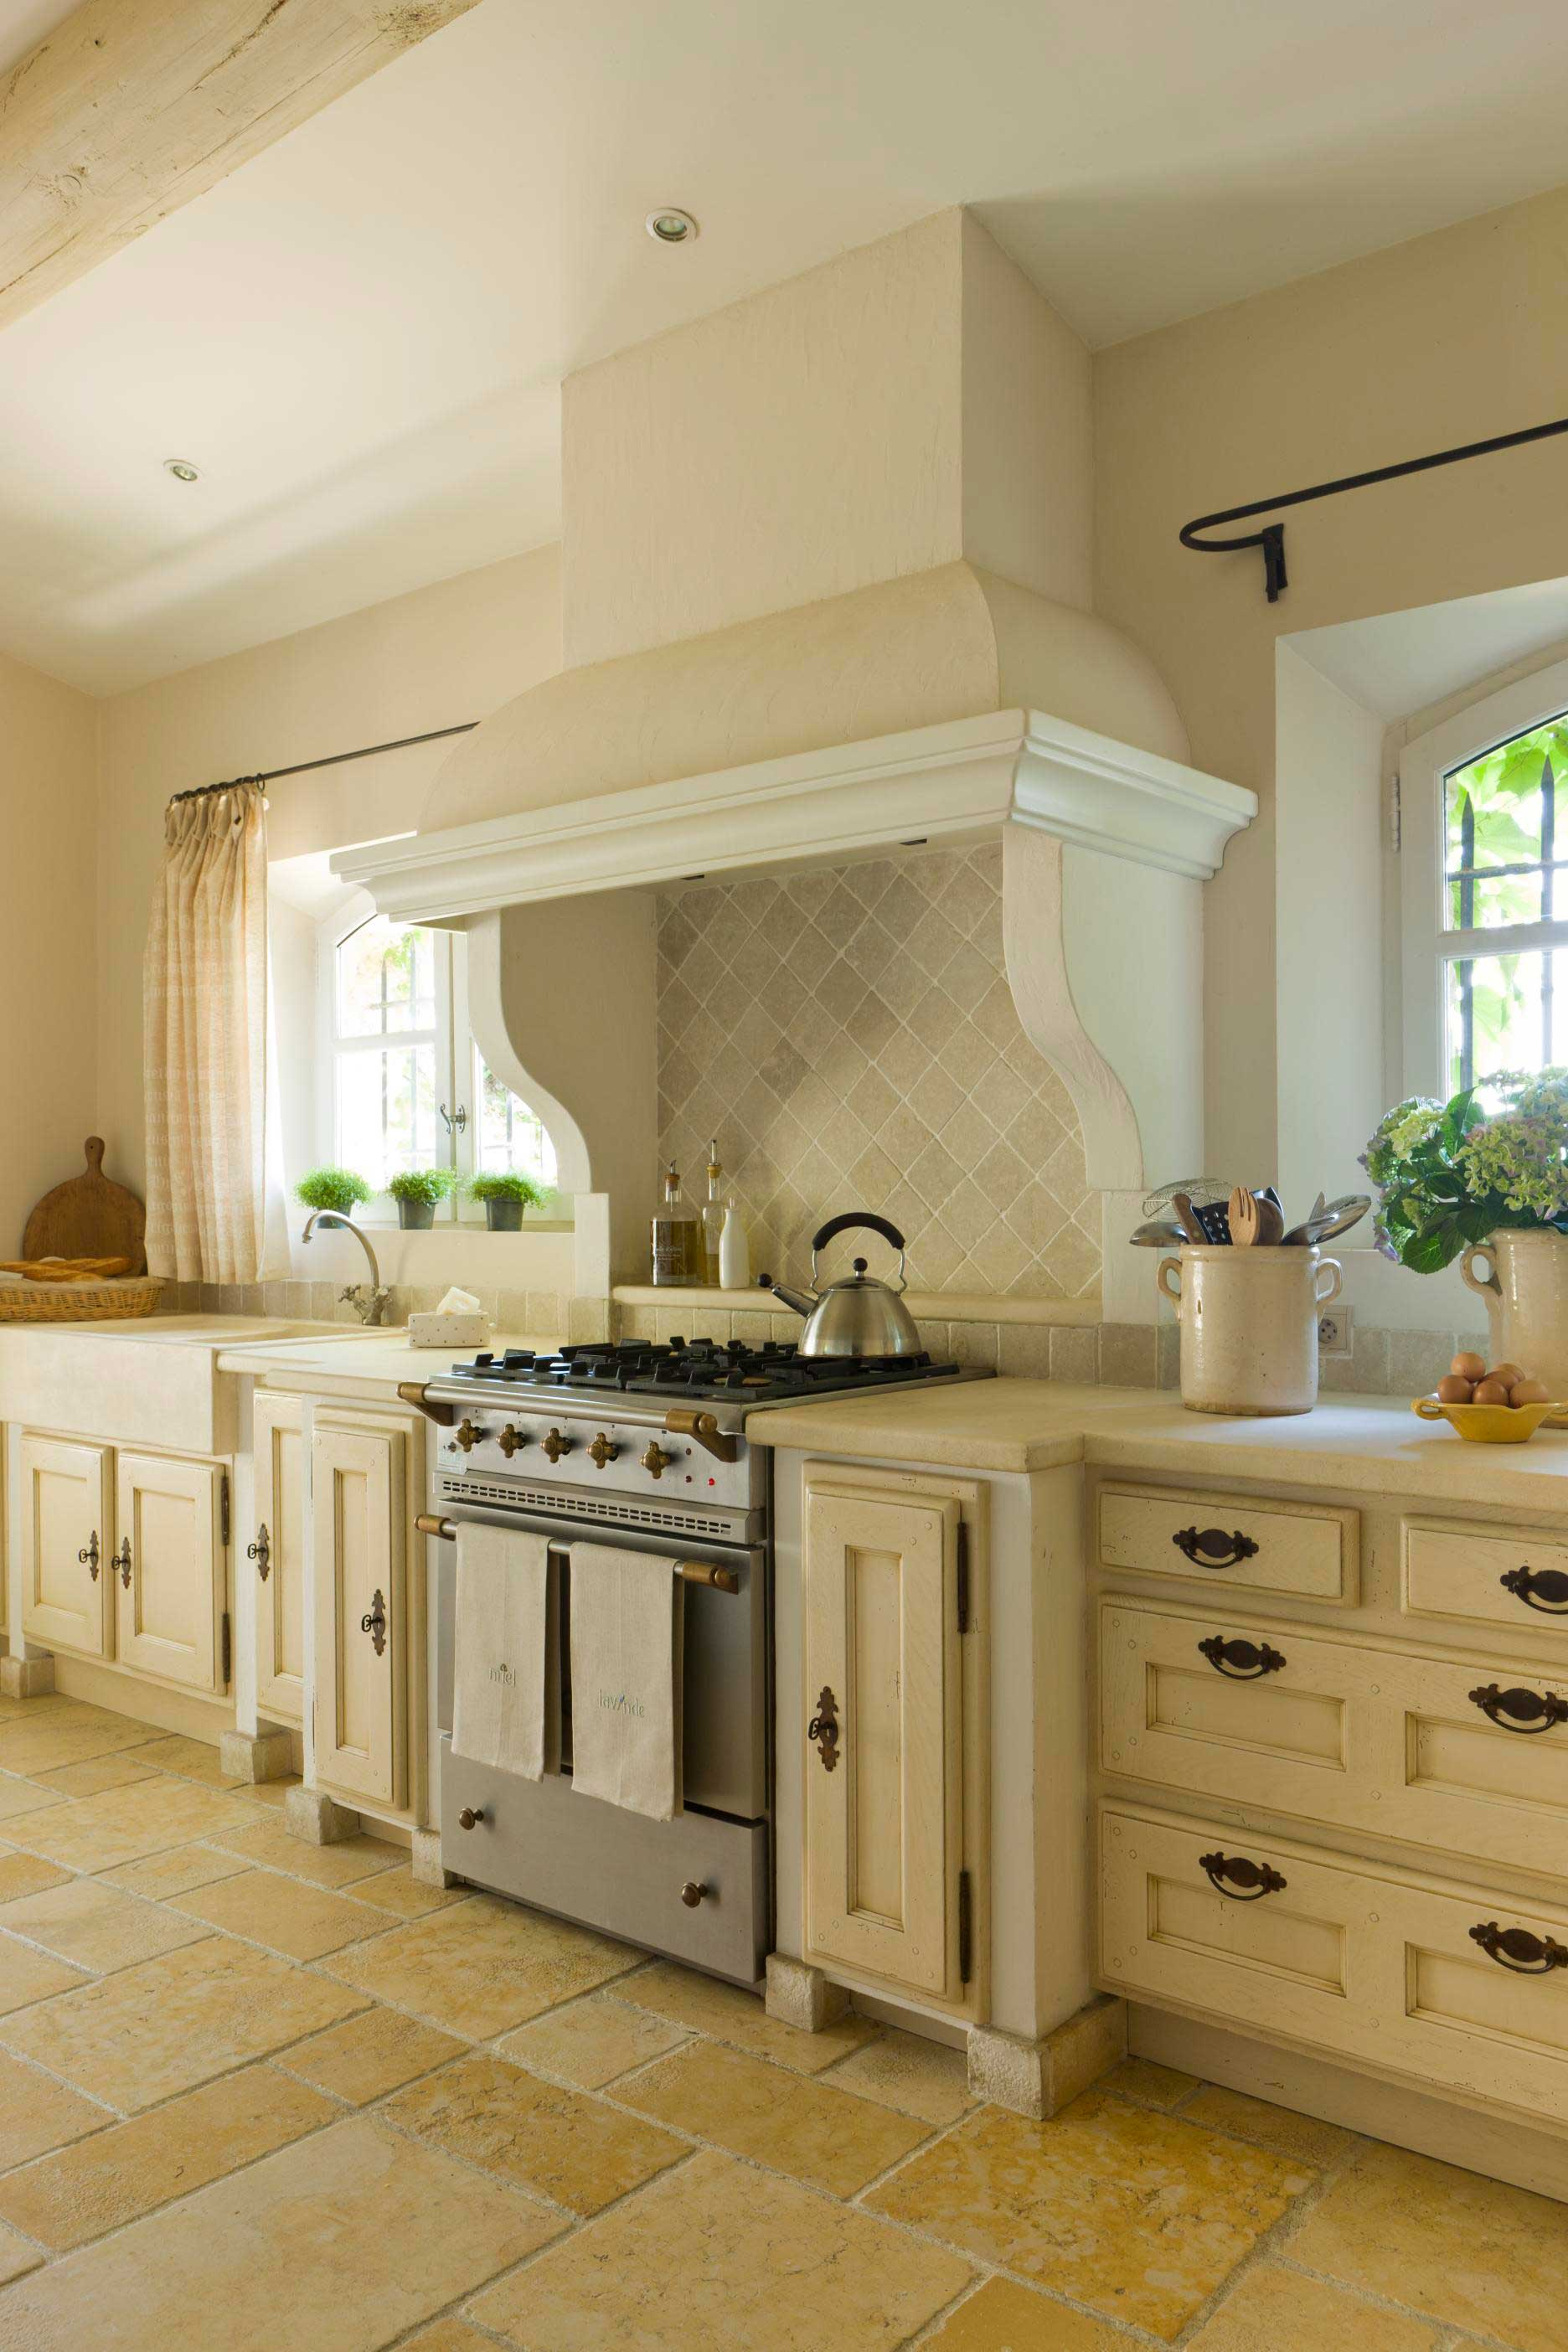 Fullsize Of Country Home Kitchen